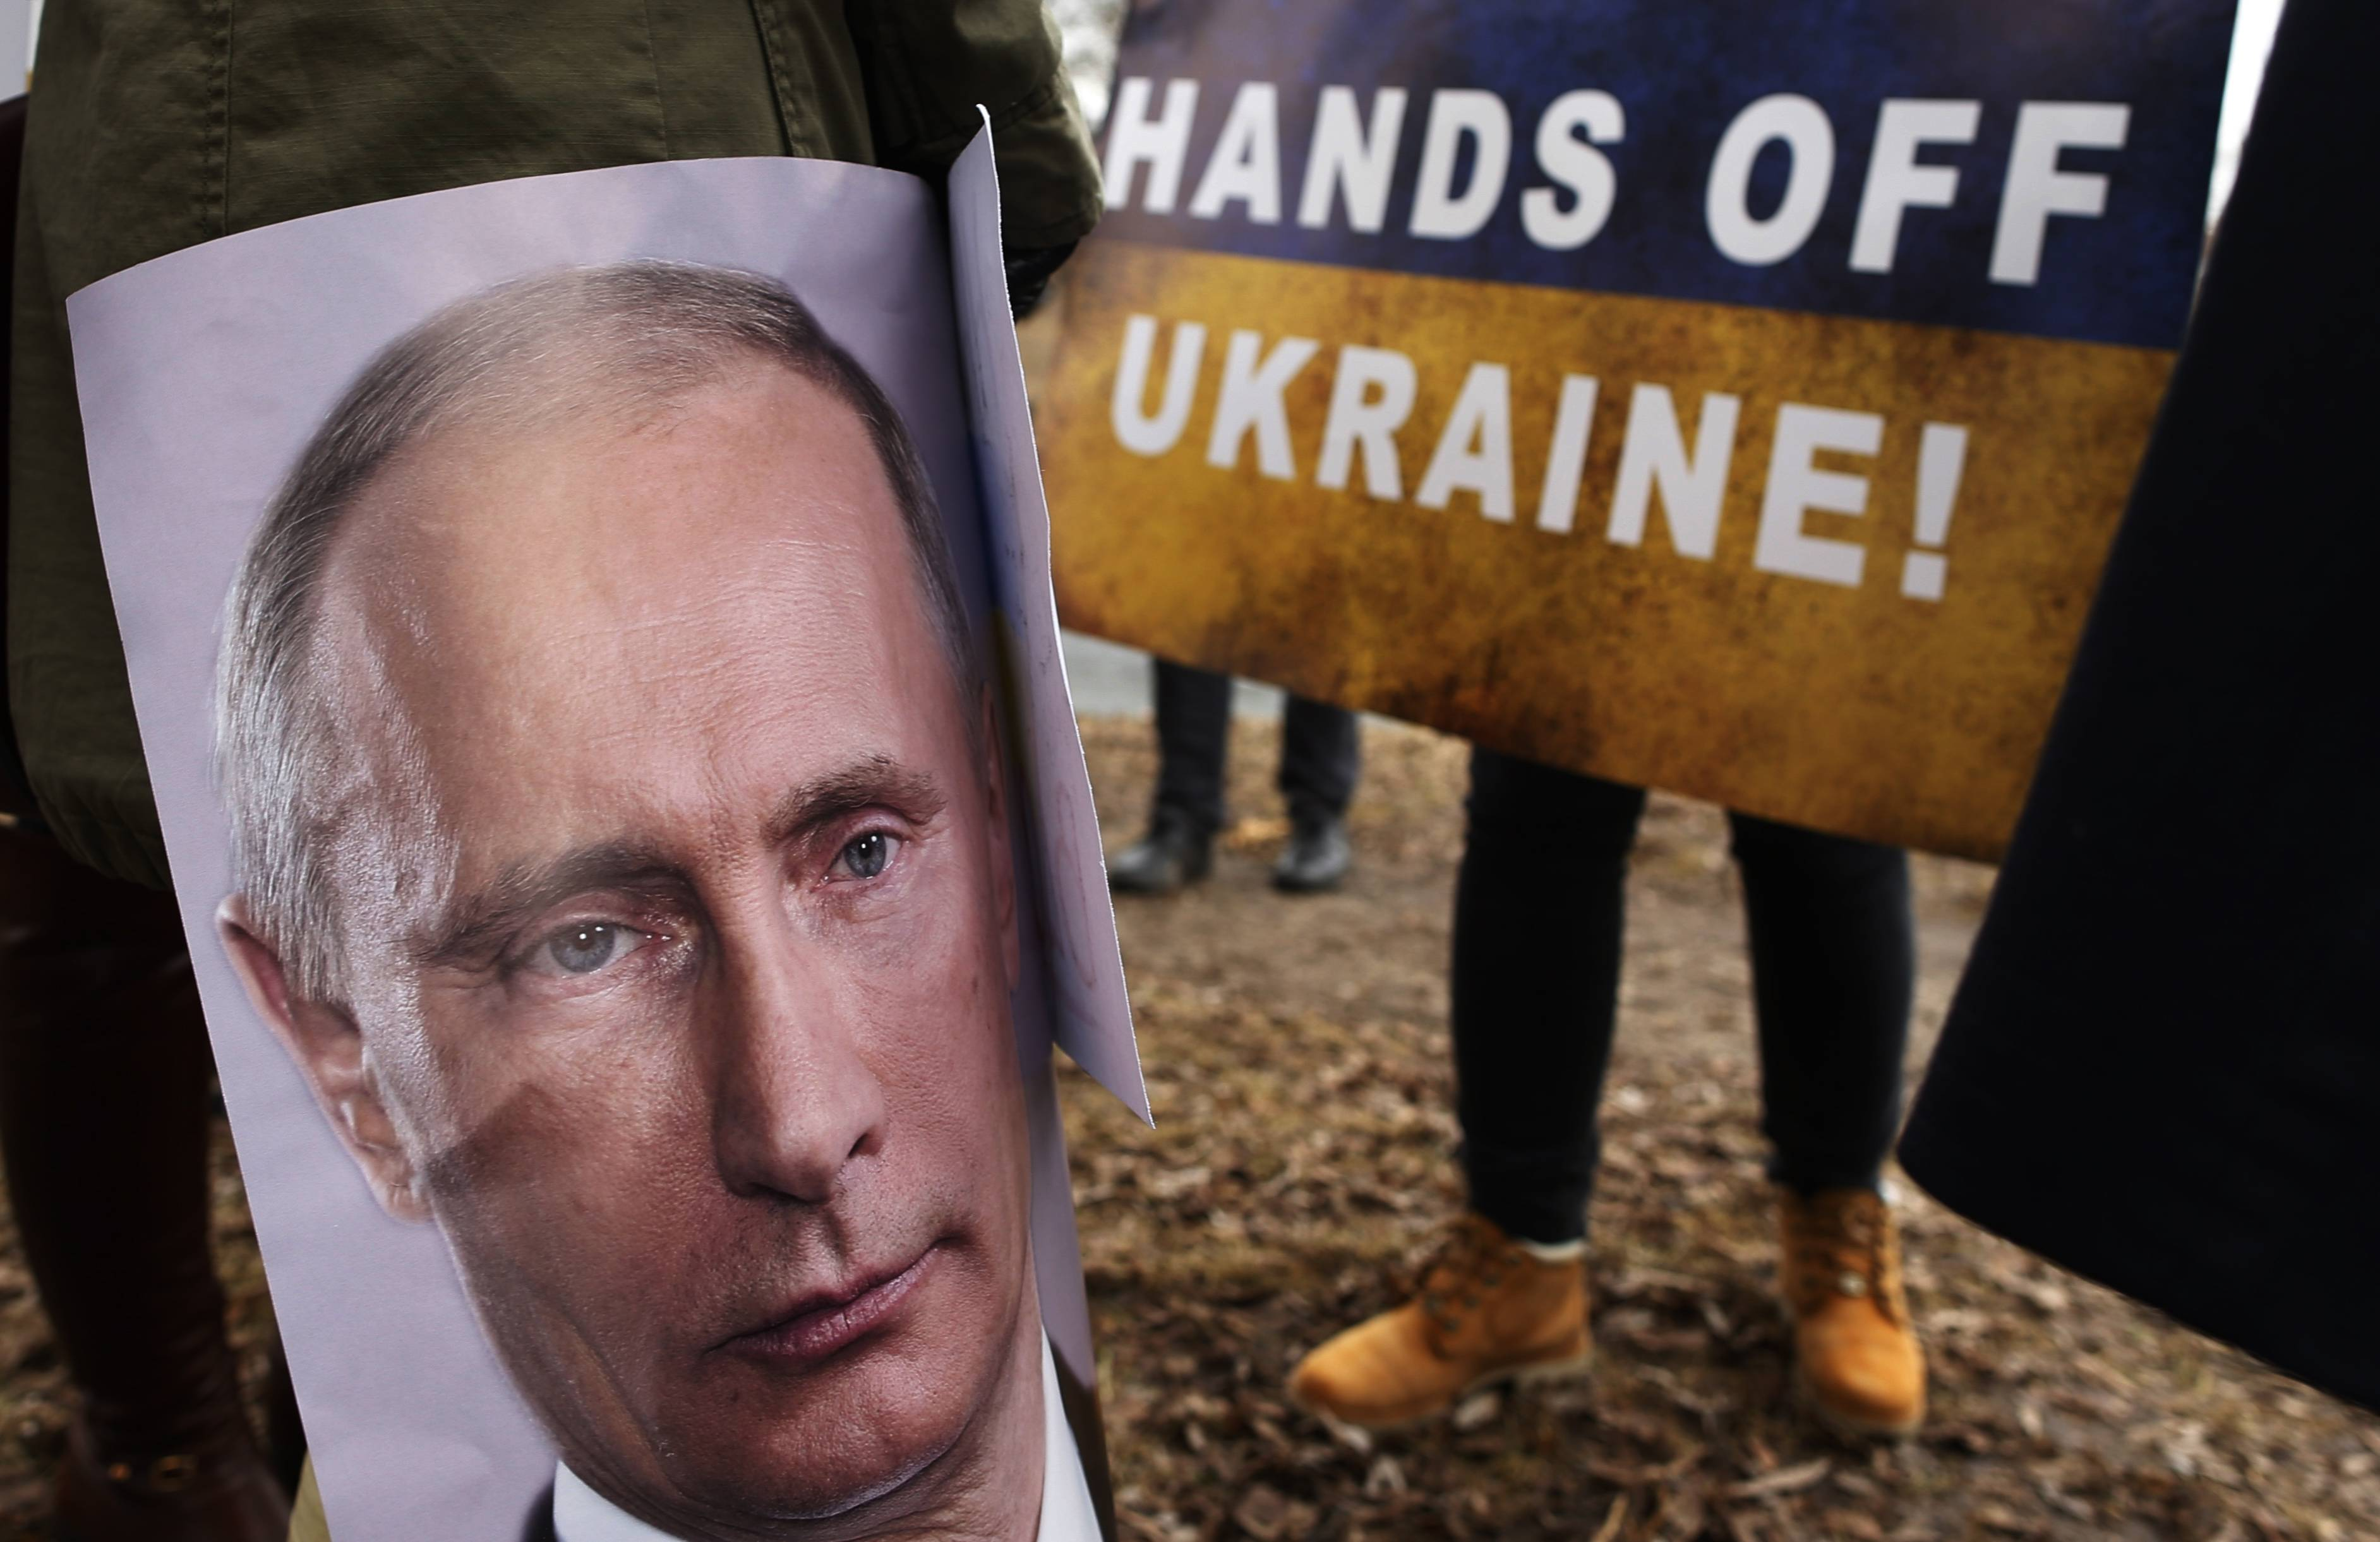 Demonstrators gather Monday outside the Russian Embassy in Vilnius, Lithuania, to protest against Russian intervention in Ukraine. The U.S. and its allies are weighing sanctions on Moscow and whether to bolster defenses in Europe in response to Russia's military advances on Ukraine.